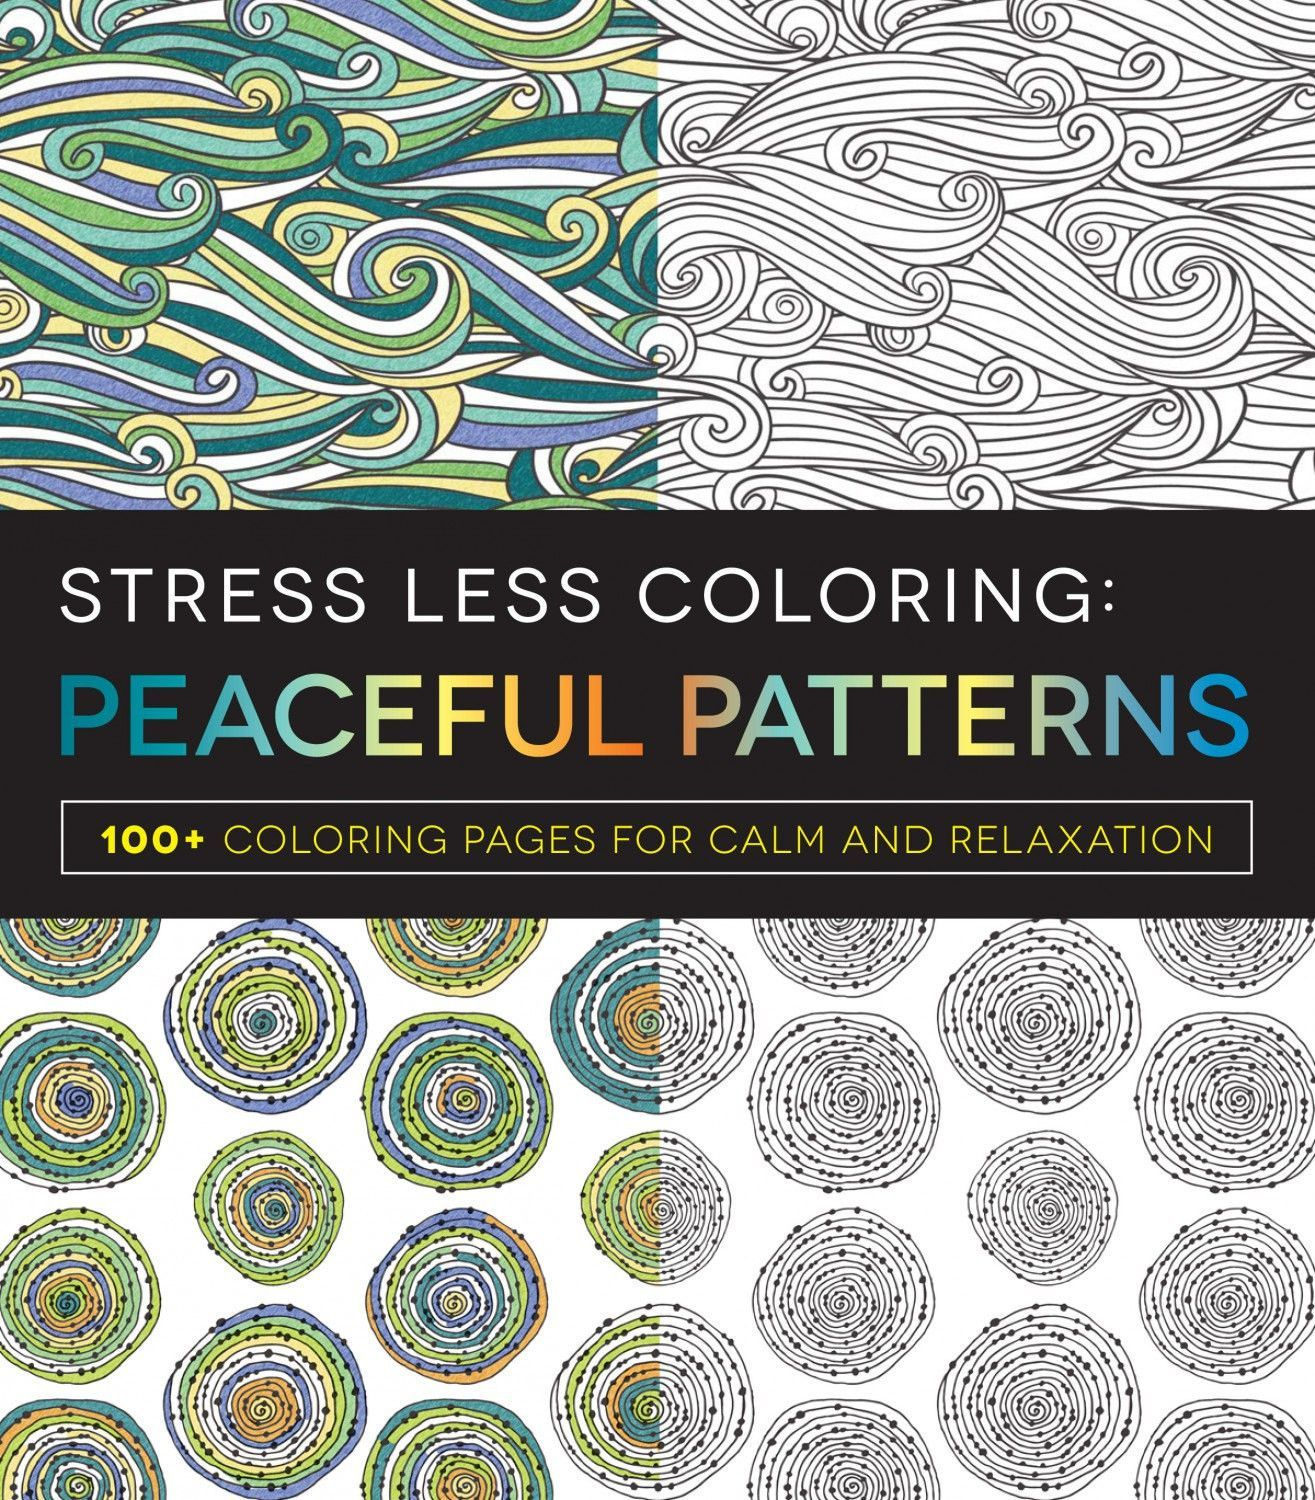 Posh coloring book soothing designs for fun and relaxation - Stress Less Peace Patterns Adult Coloring Book With Soft Cover